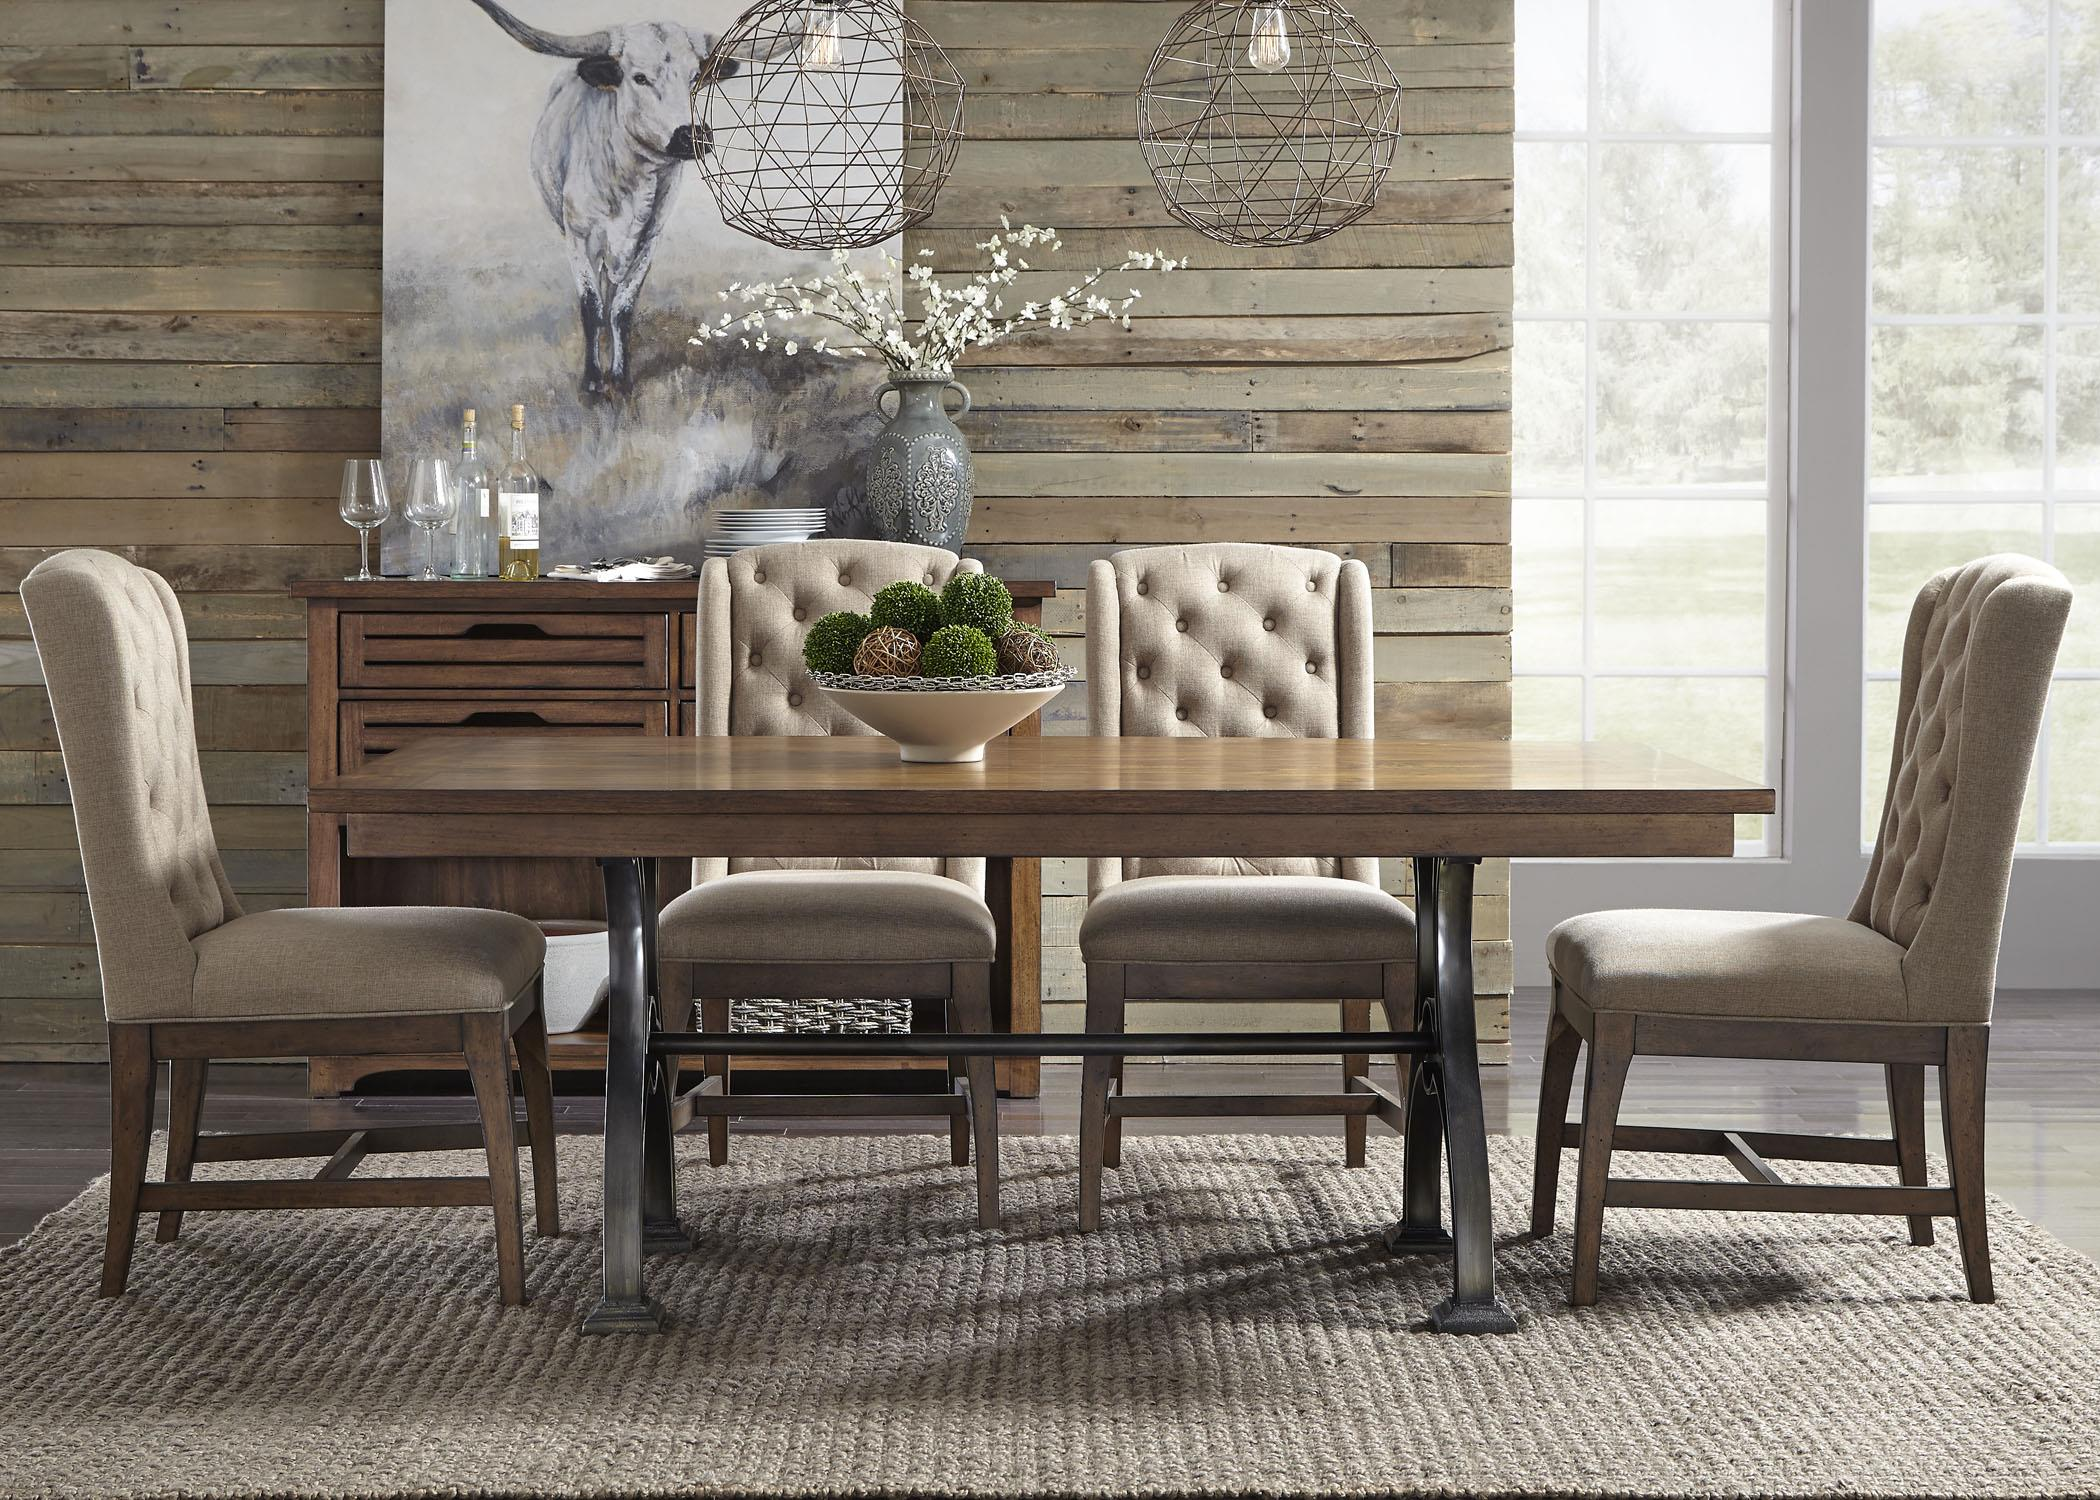 Liberty Furniture Emma Formal Dining Room Group - Item Number: 411 Dining Room Group 1